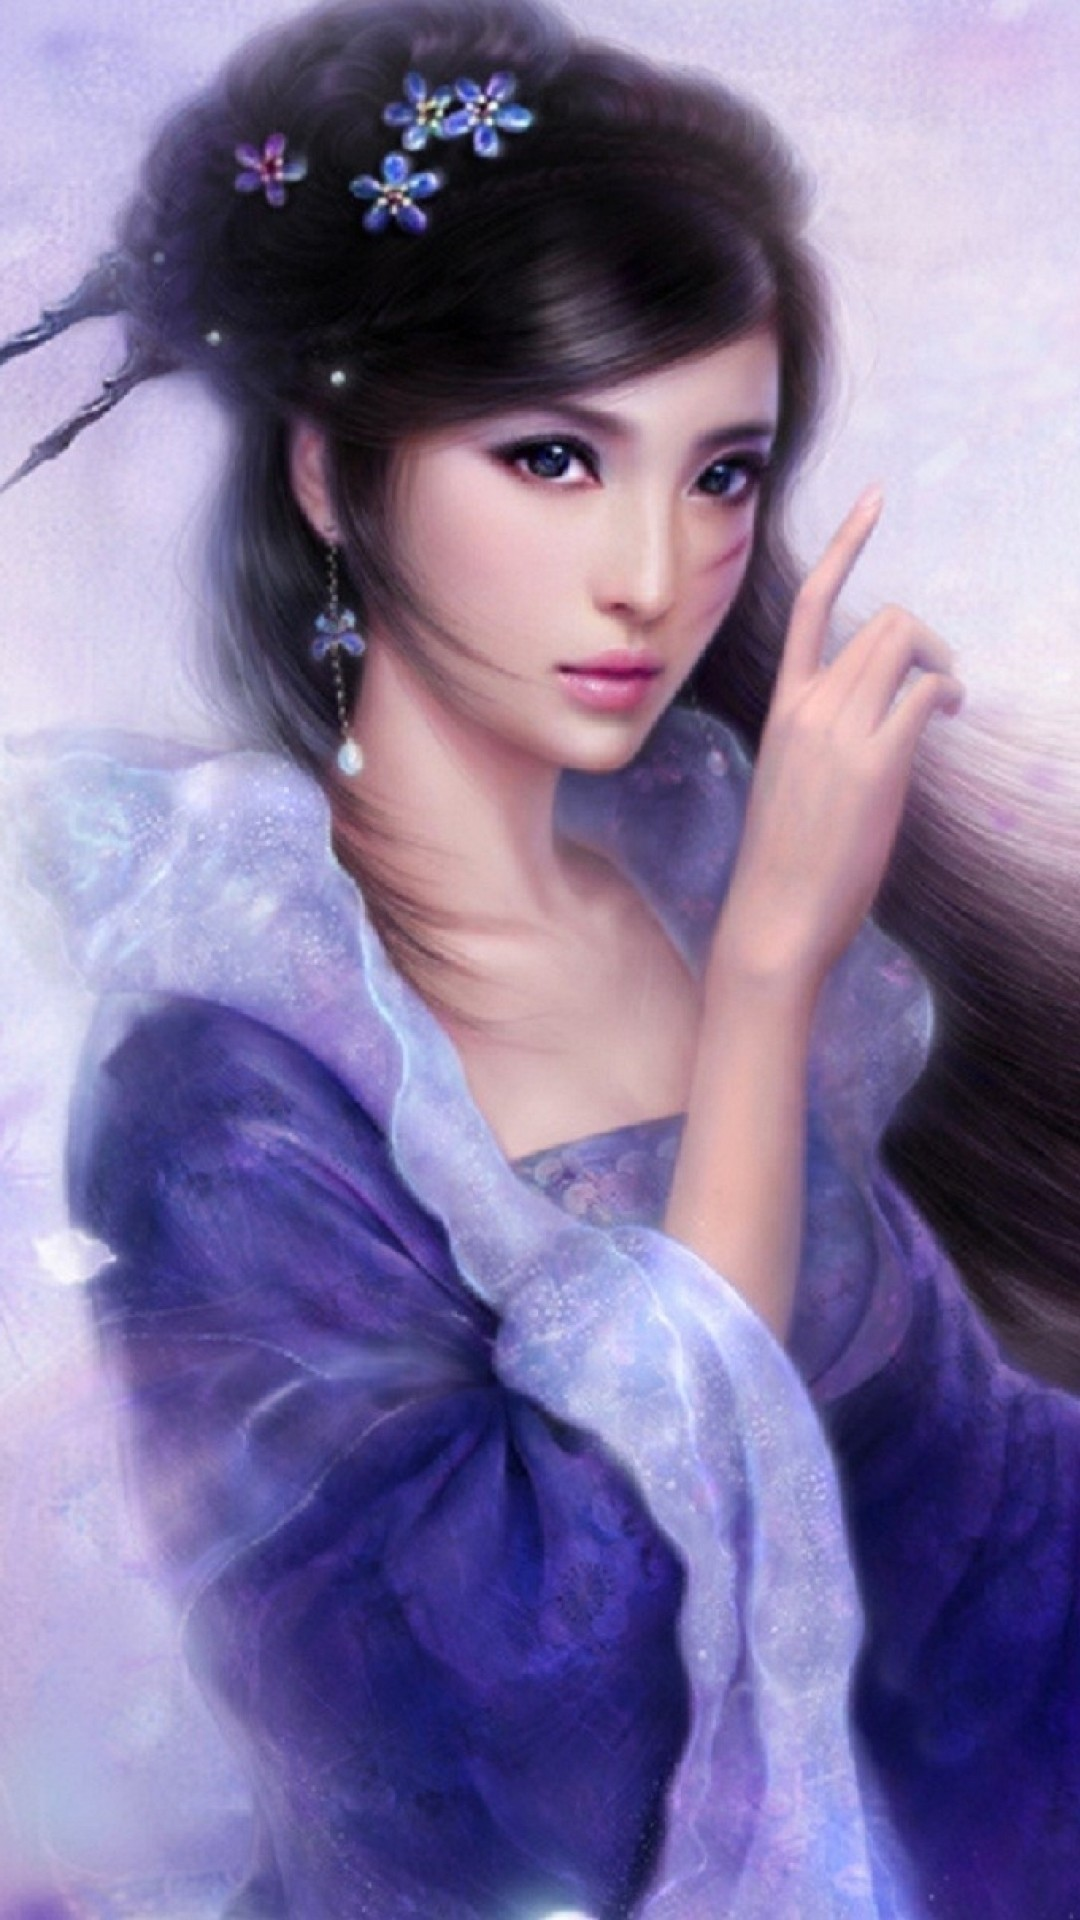 fantasy female wallpaper (75+ images)